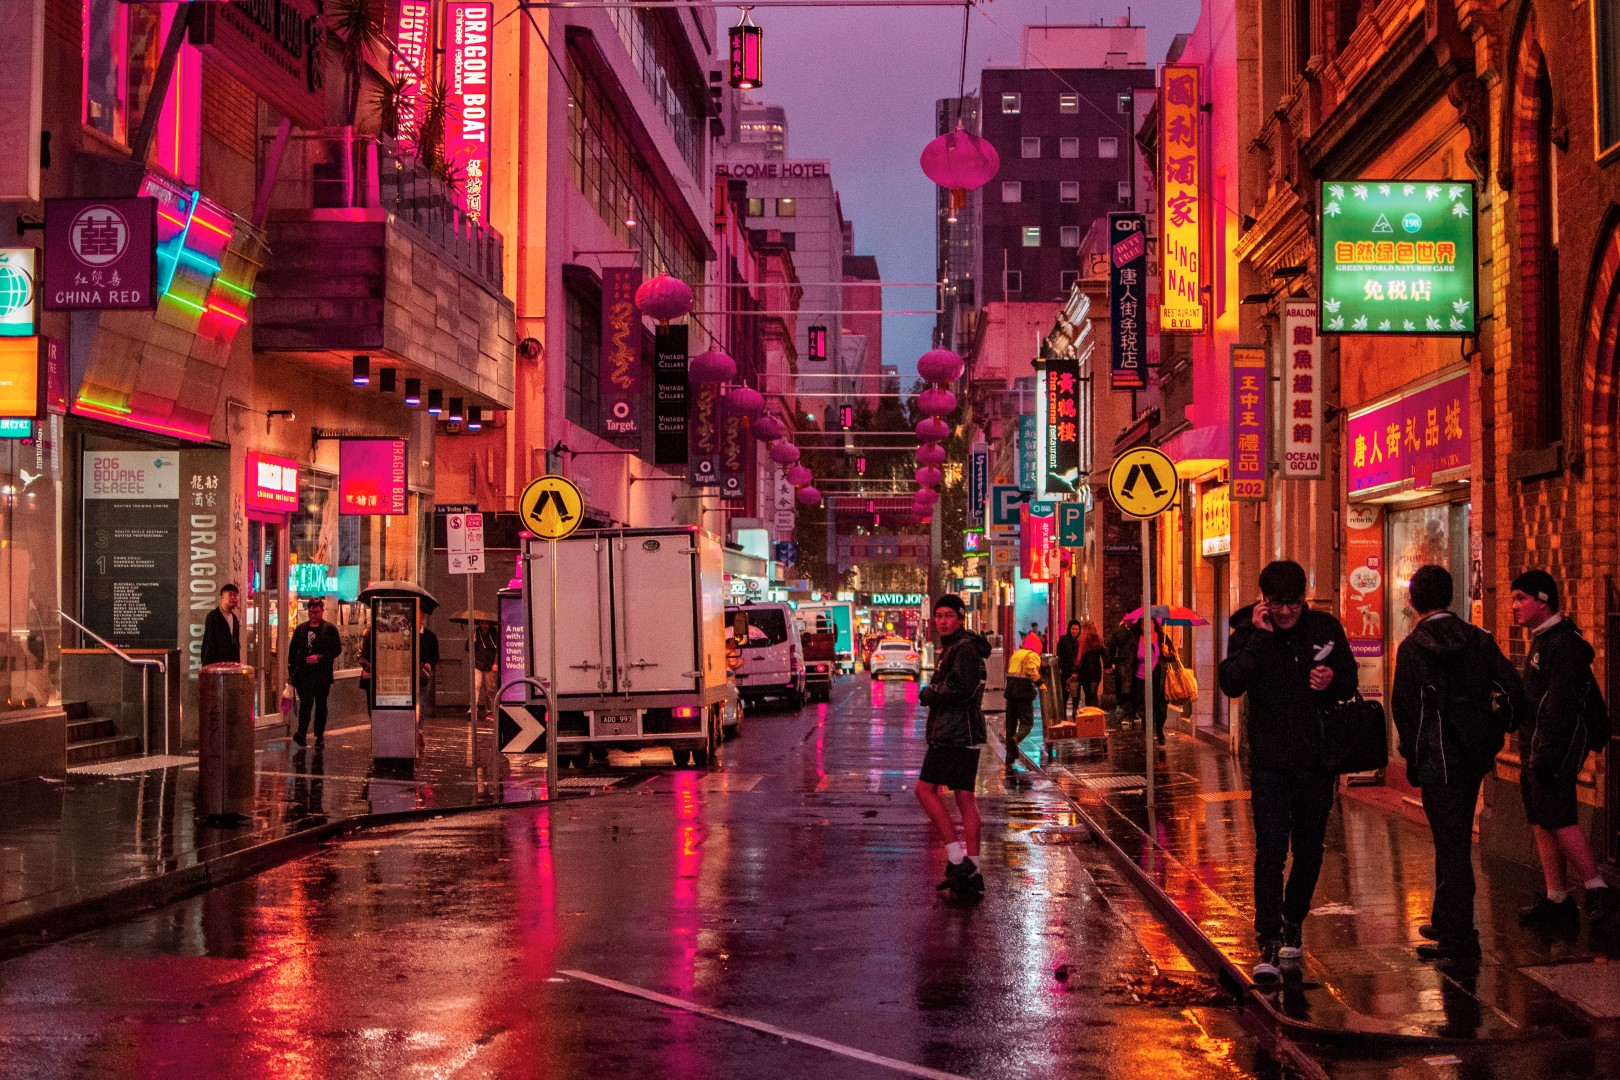 Melbourne's Getting a Second $450 Million Chinatown